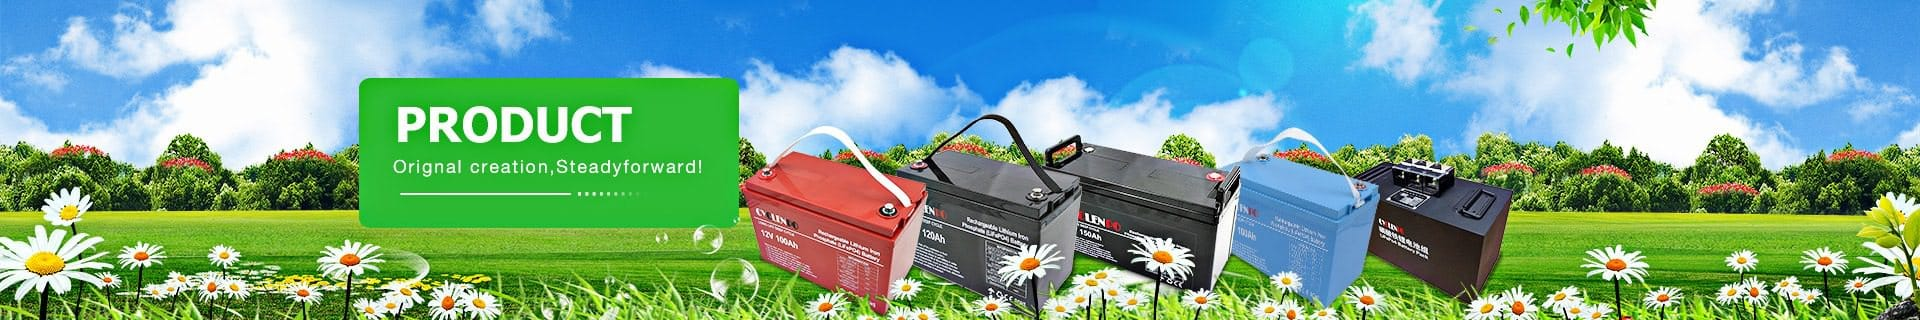 Lifepo4 12V 100Ah, 12 Volt 100Ah Battery, Batteries 12v 100ah